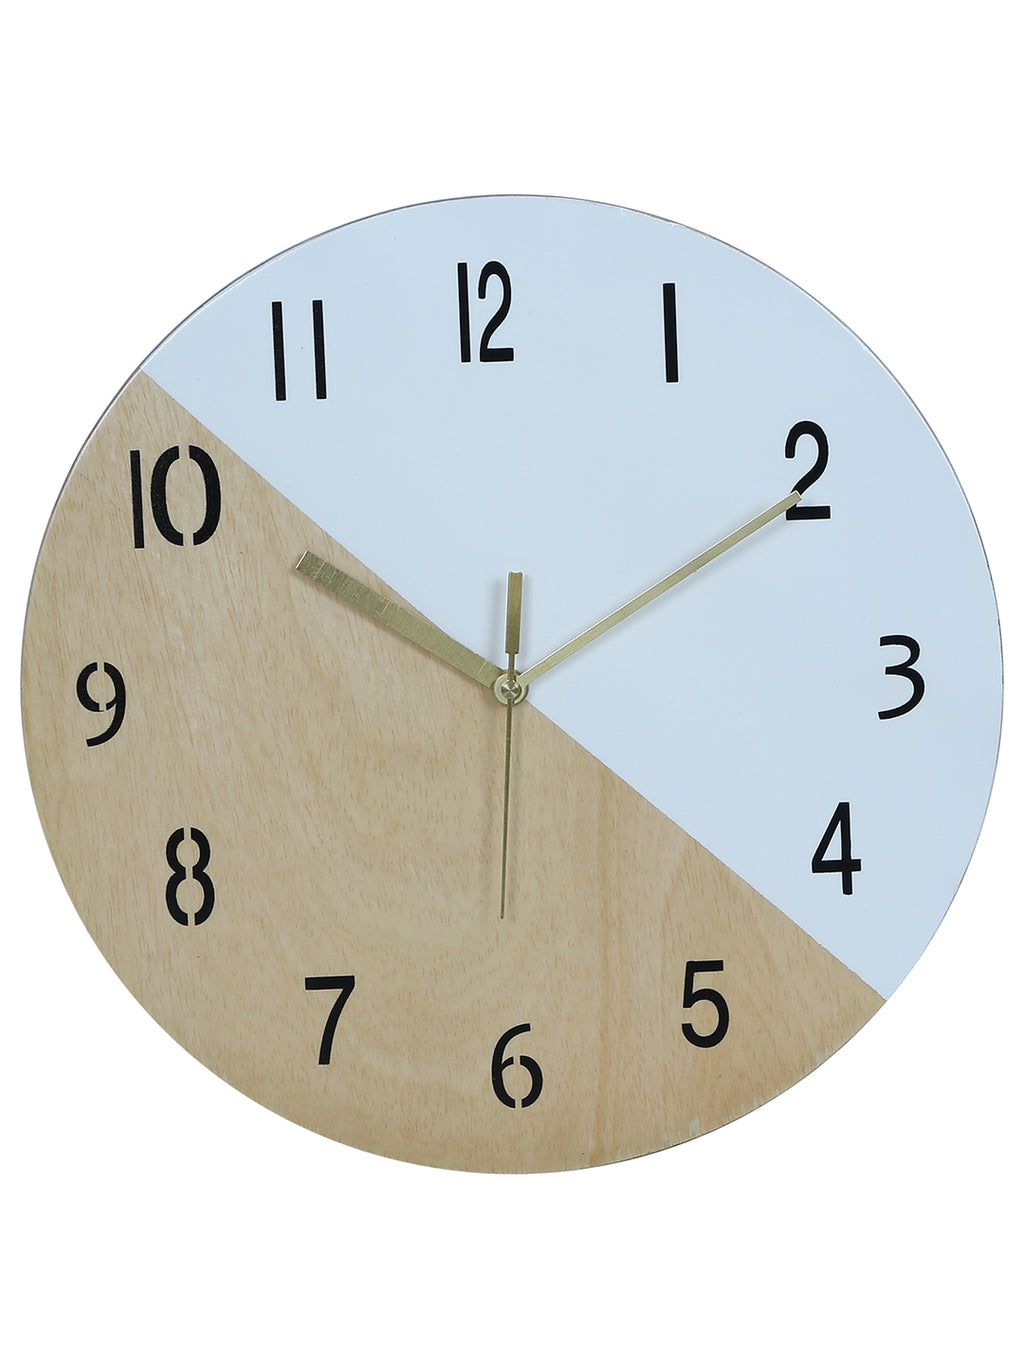 RANGRAGE Handcrafted Circular White Wooden Wall Clock